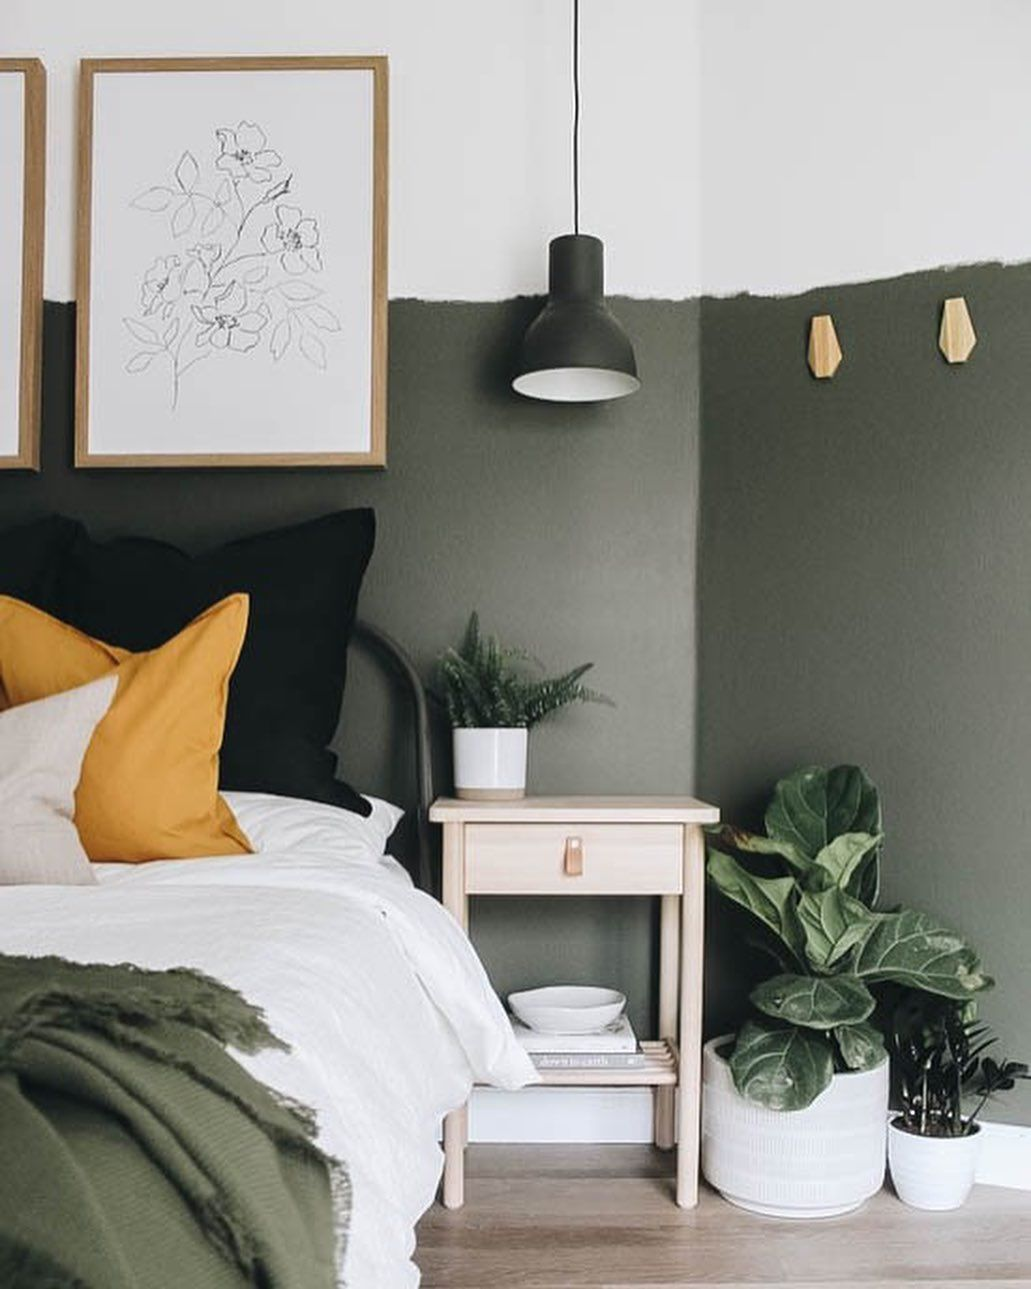 Pin by Sarah on +house makeover in 2020 Guest bedroom